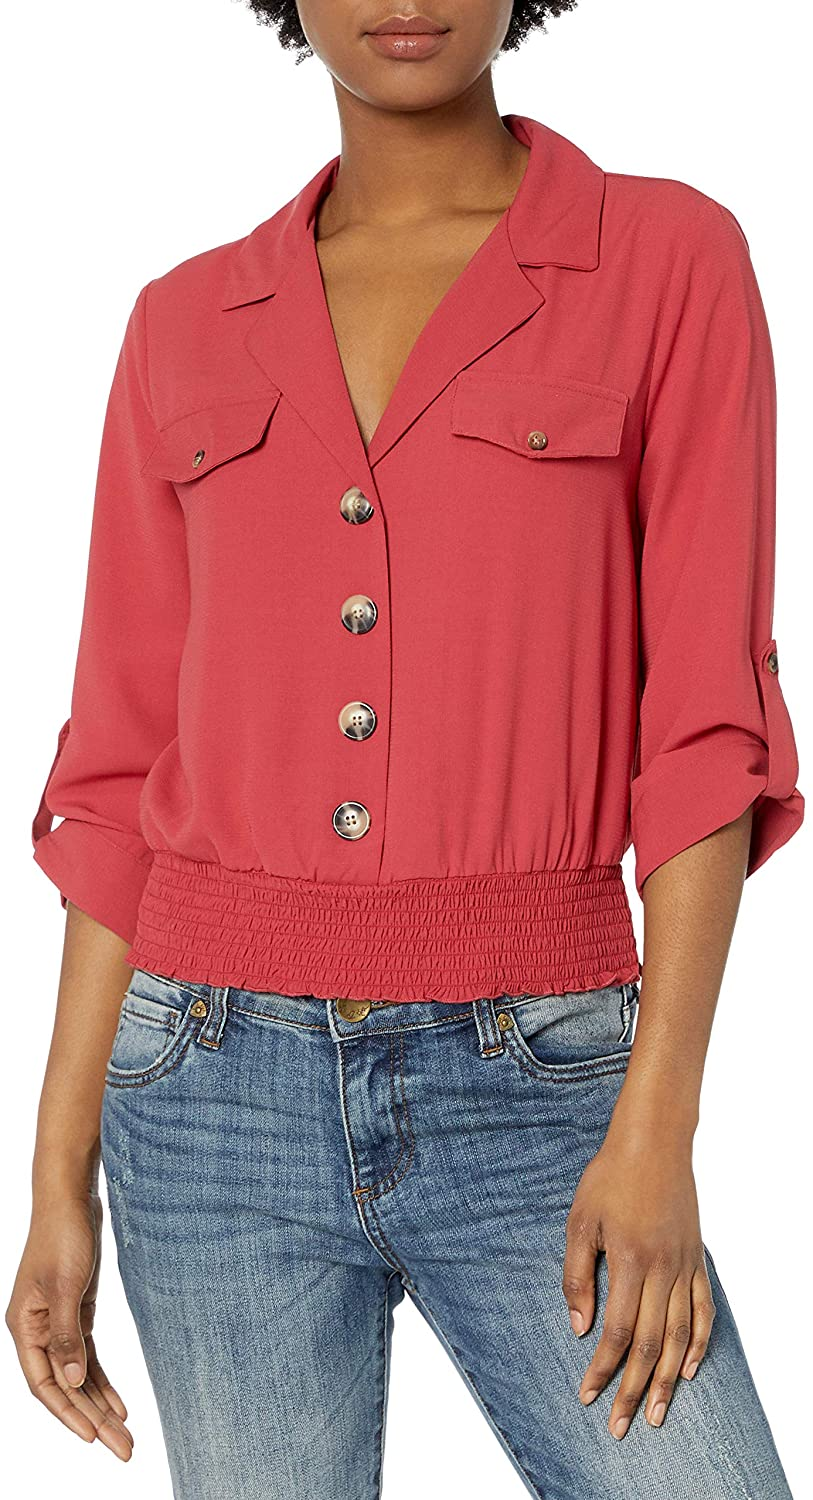 A. Byer Women's Button Front Shirred Banded Top